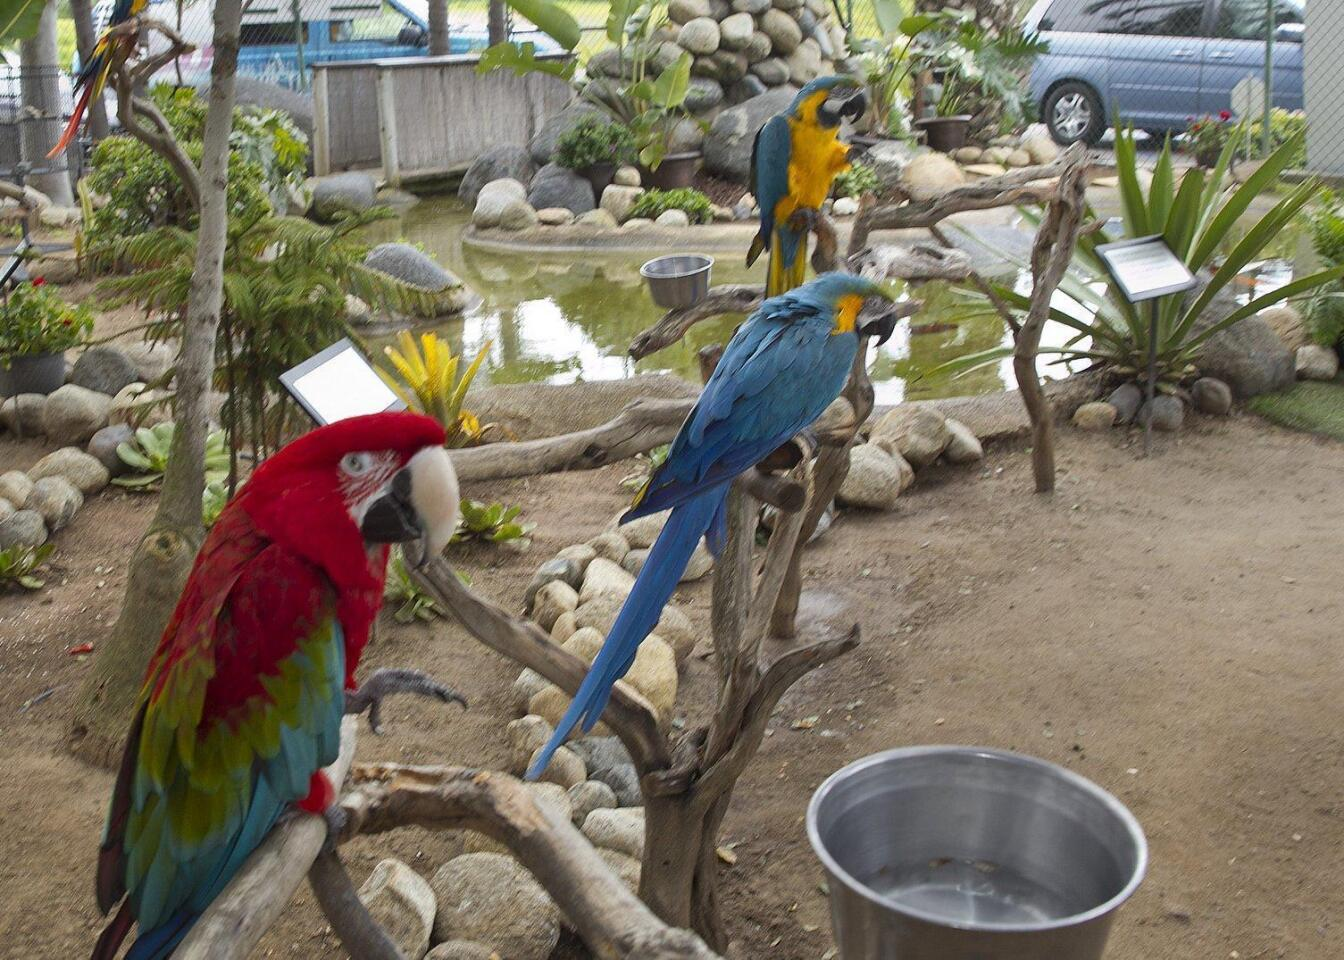 The Macaws greet visitors at the entrance